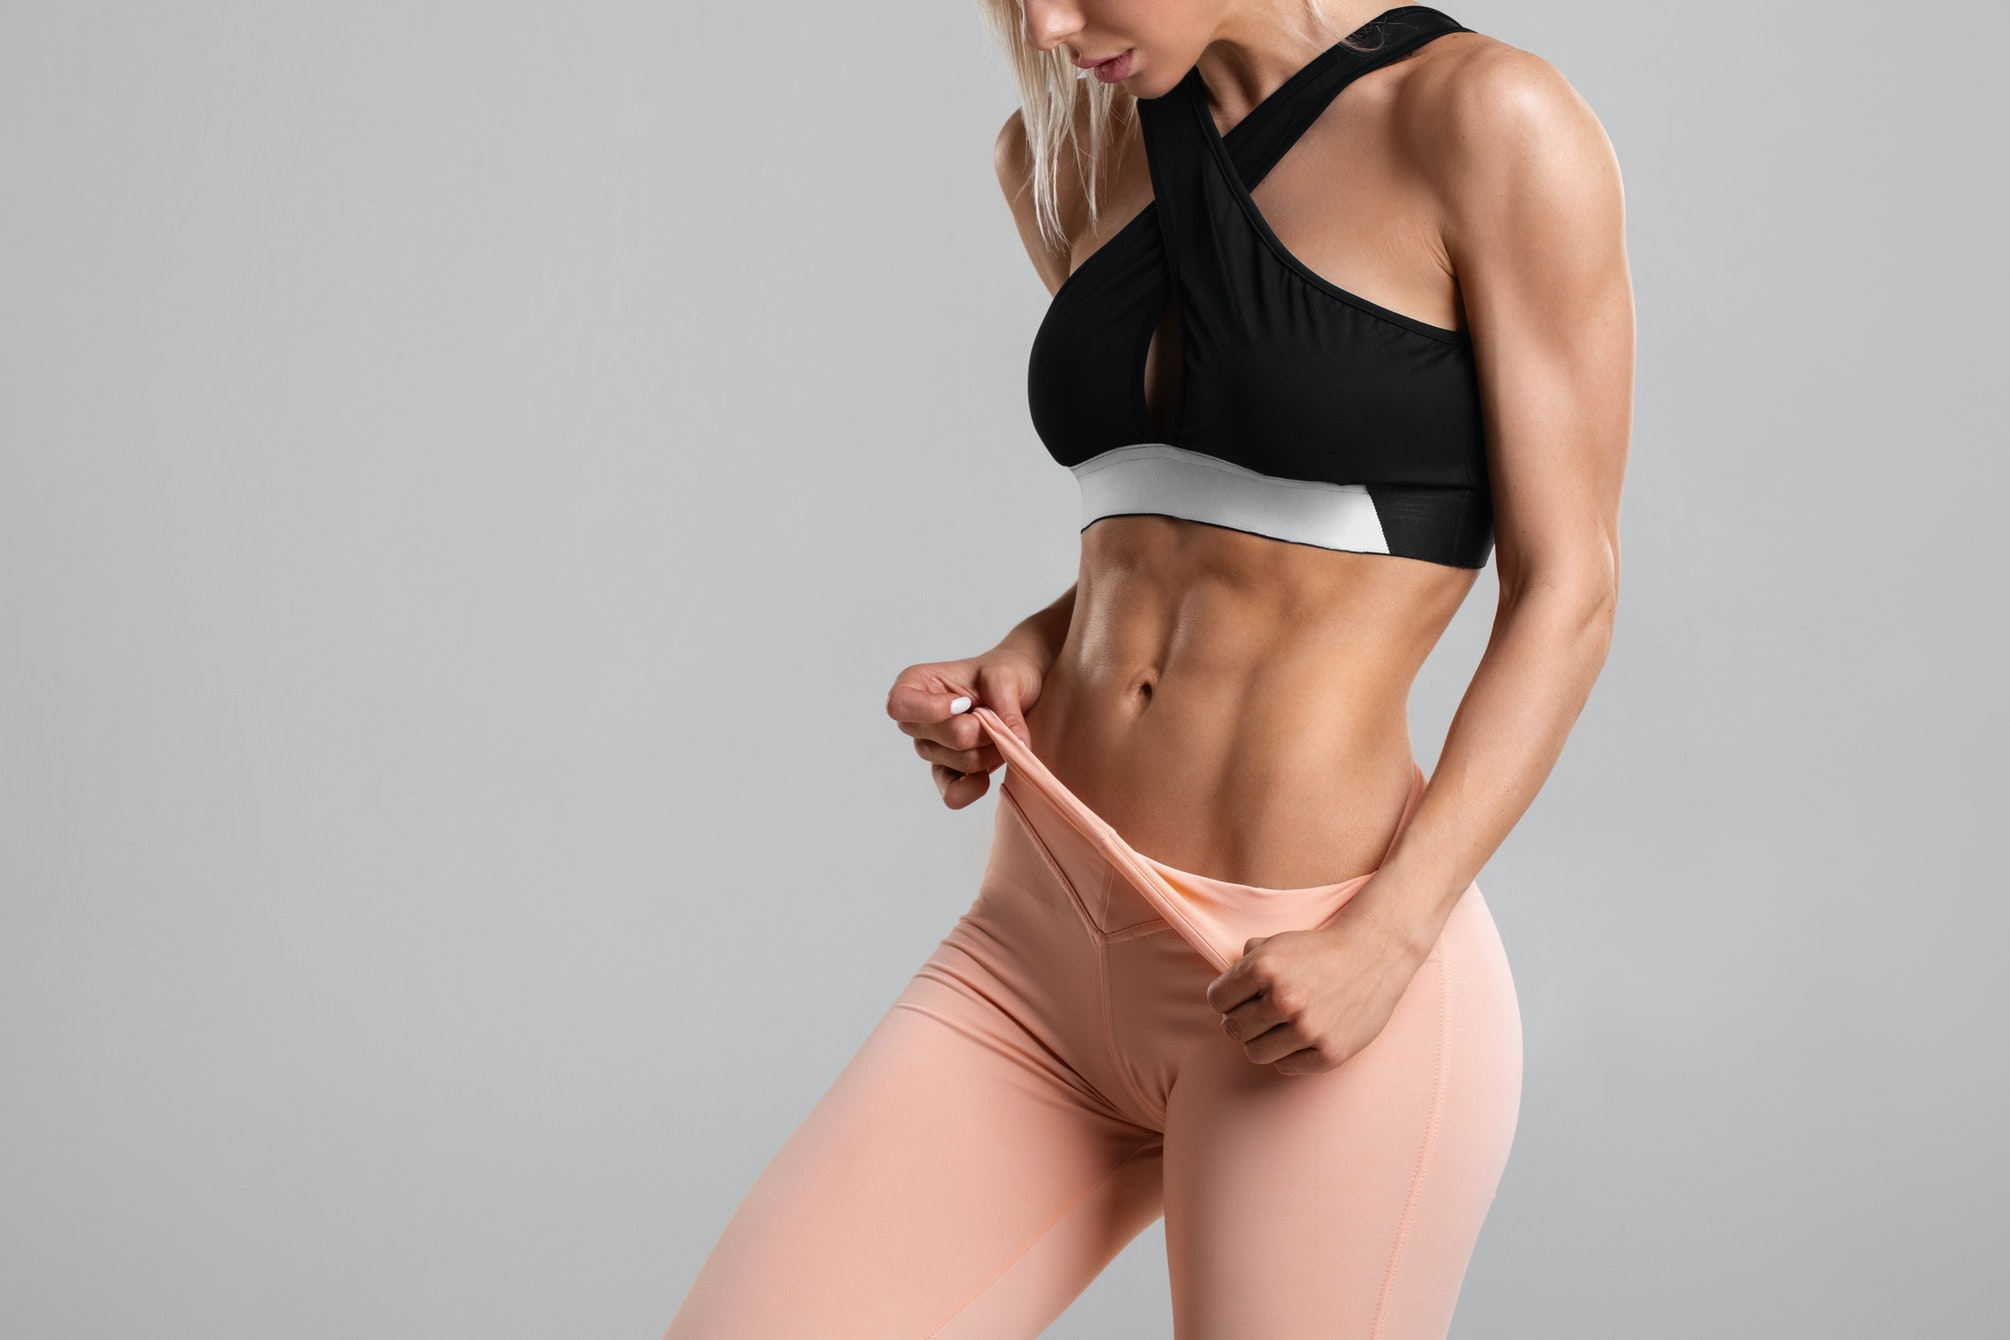 Looking to Reduce Abdominal Fat Without Surgery? Follow These Steps